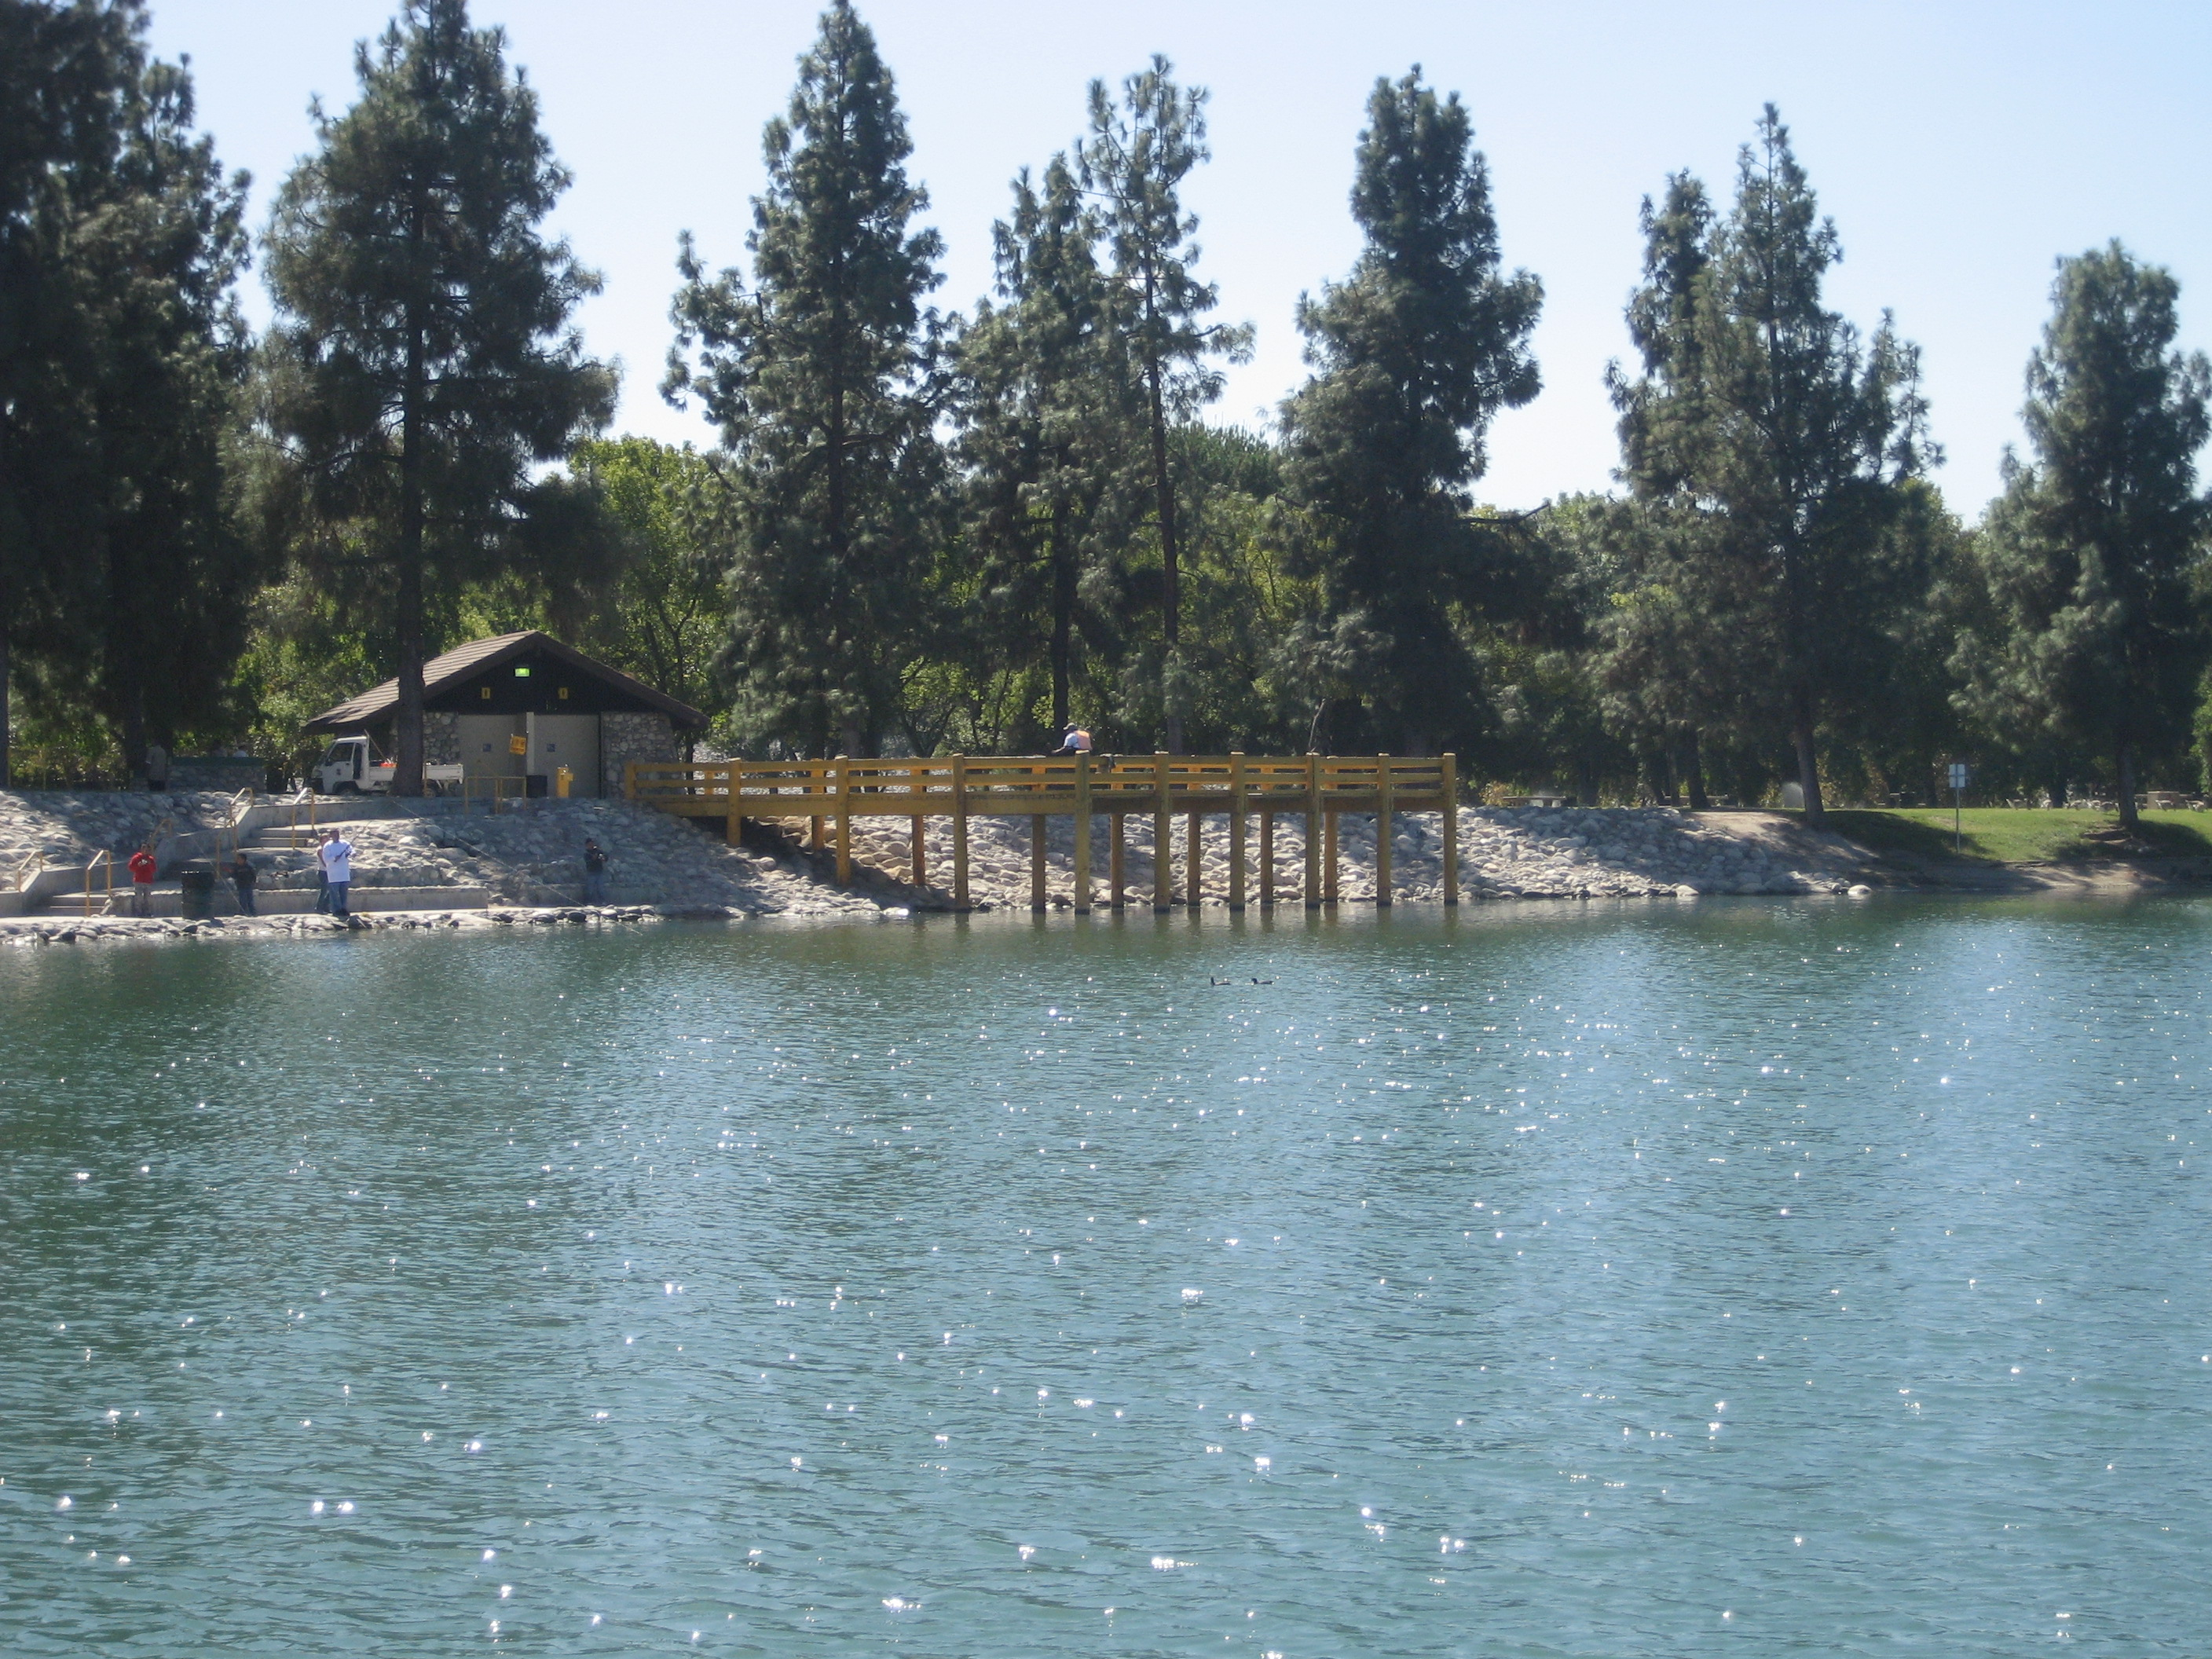 Santa fe dam recreation area clears algae from lake with for Santa fe dam fishing